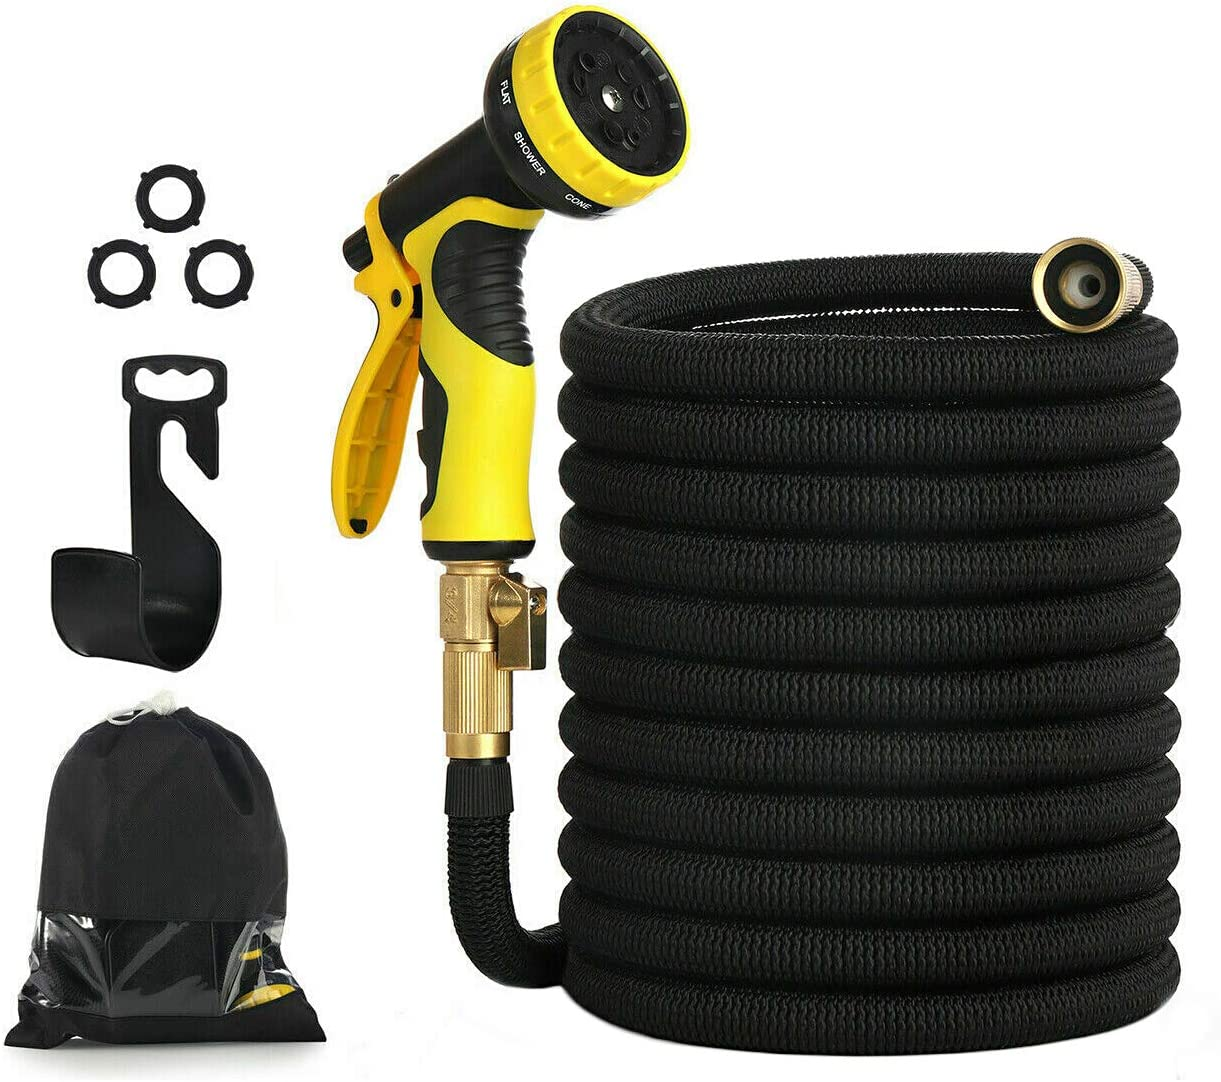 Garden Hose 150ft 45m Expandable Strongest Double Latex Inner Tube Prevent Leaking Magic Hosepipe with 9 Function Spray Gun+Solid Brass Fittings Extended version 150FT-45M